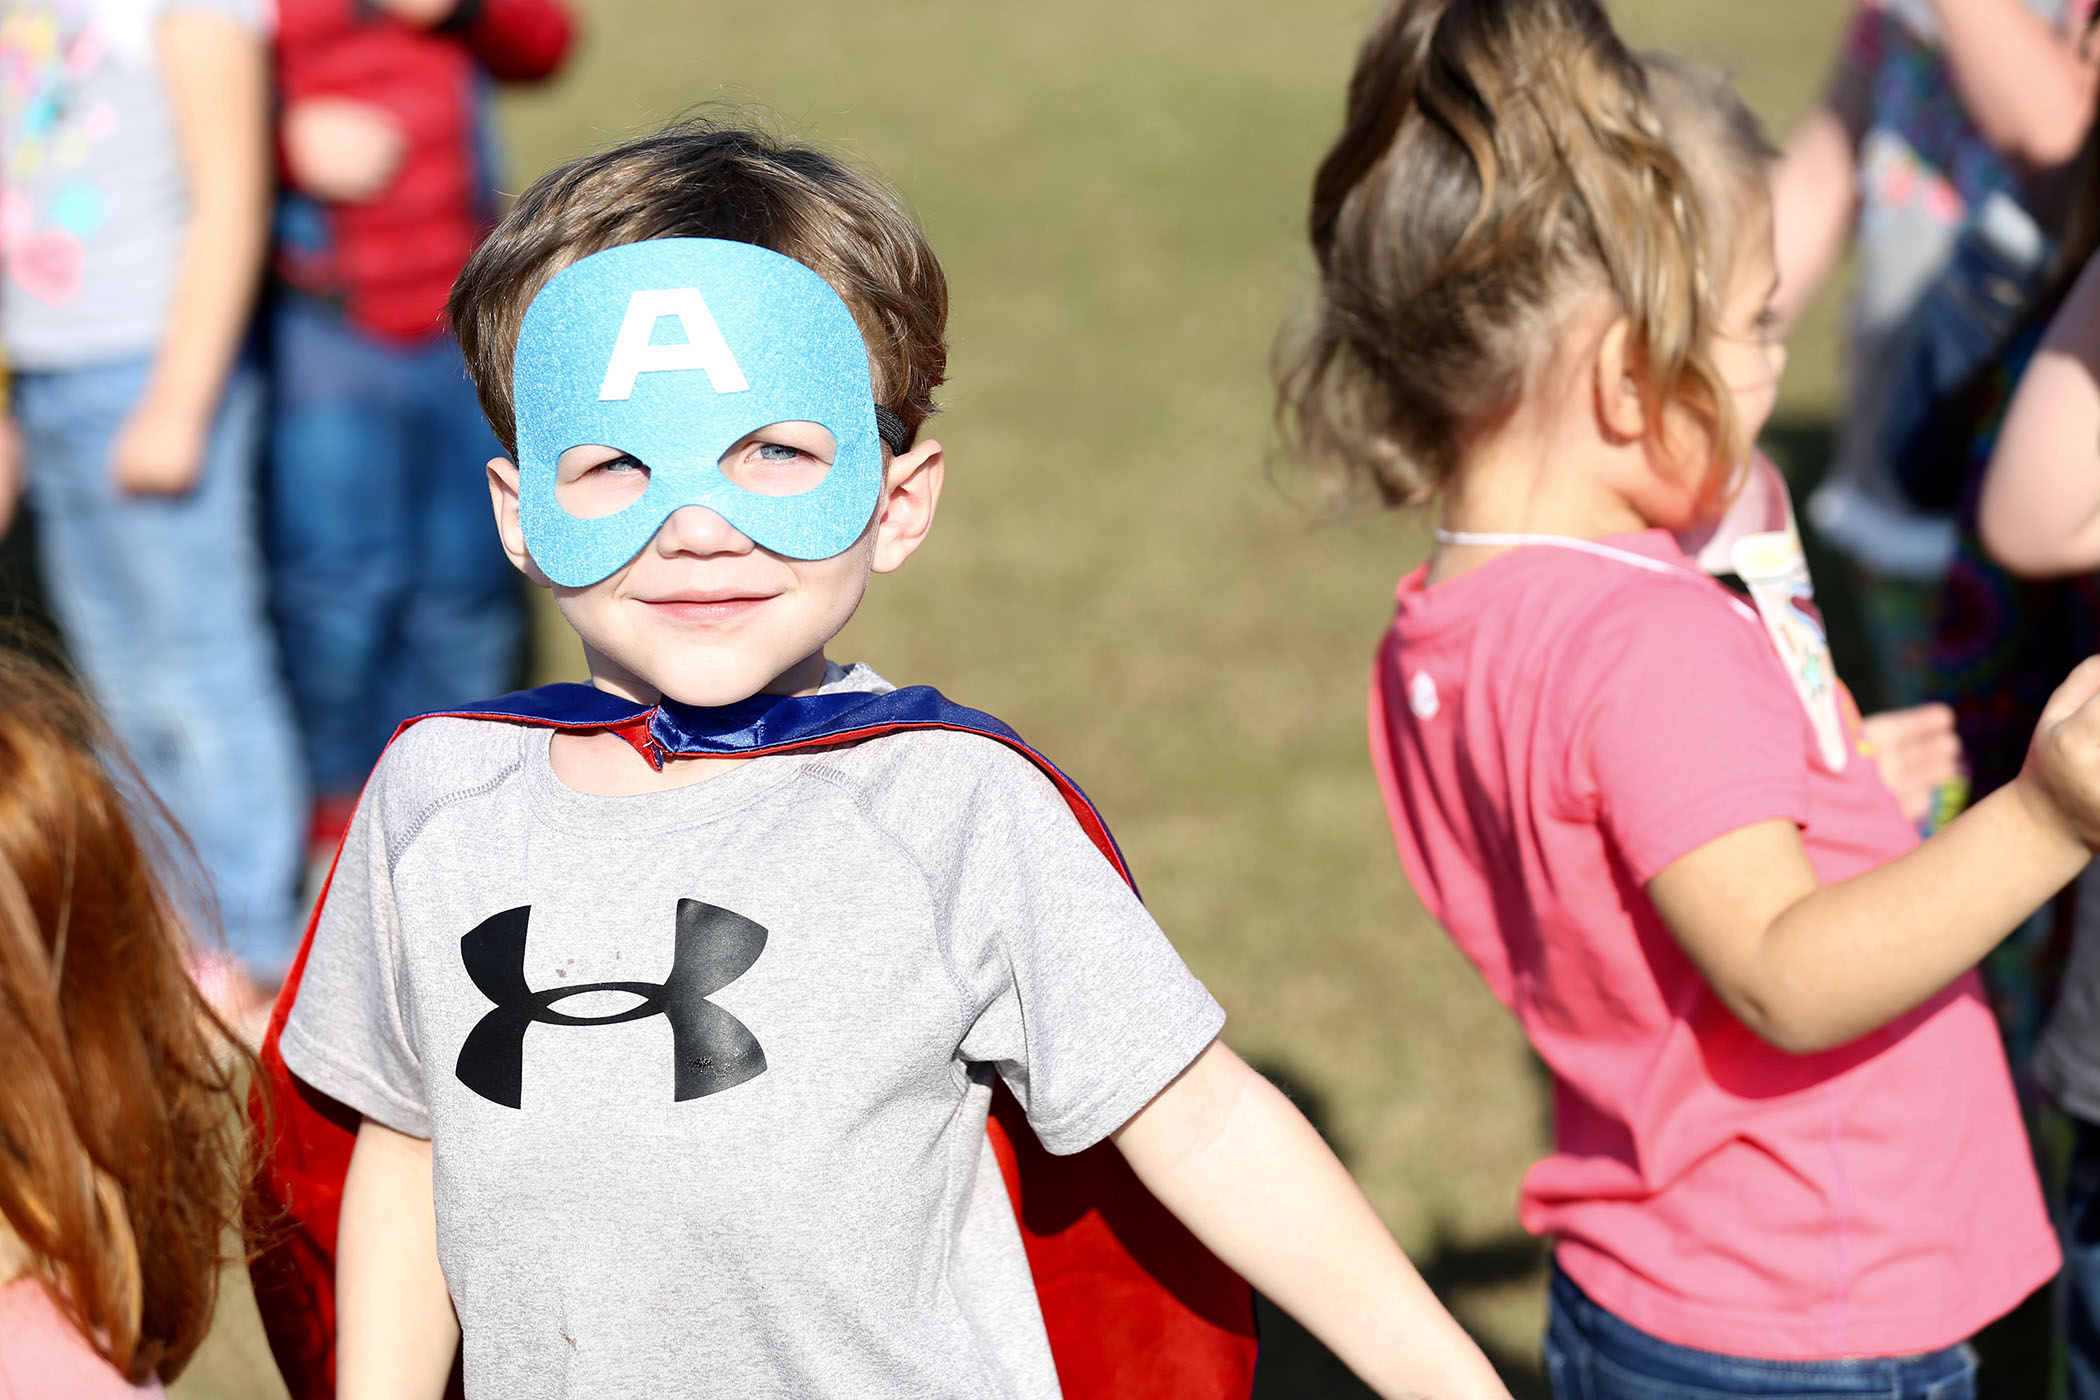 A QLE student stands in line waiting to participate in the QLE Fun Run.